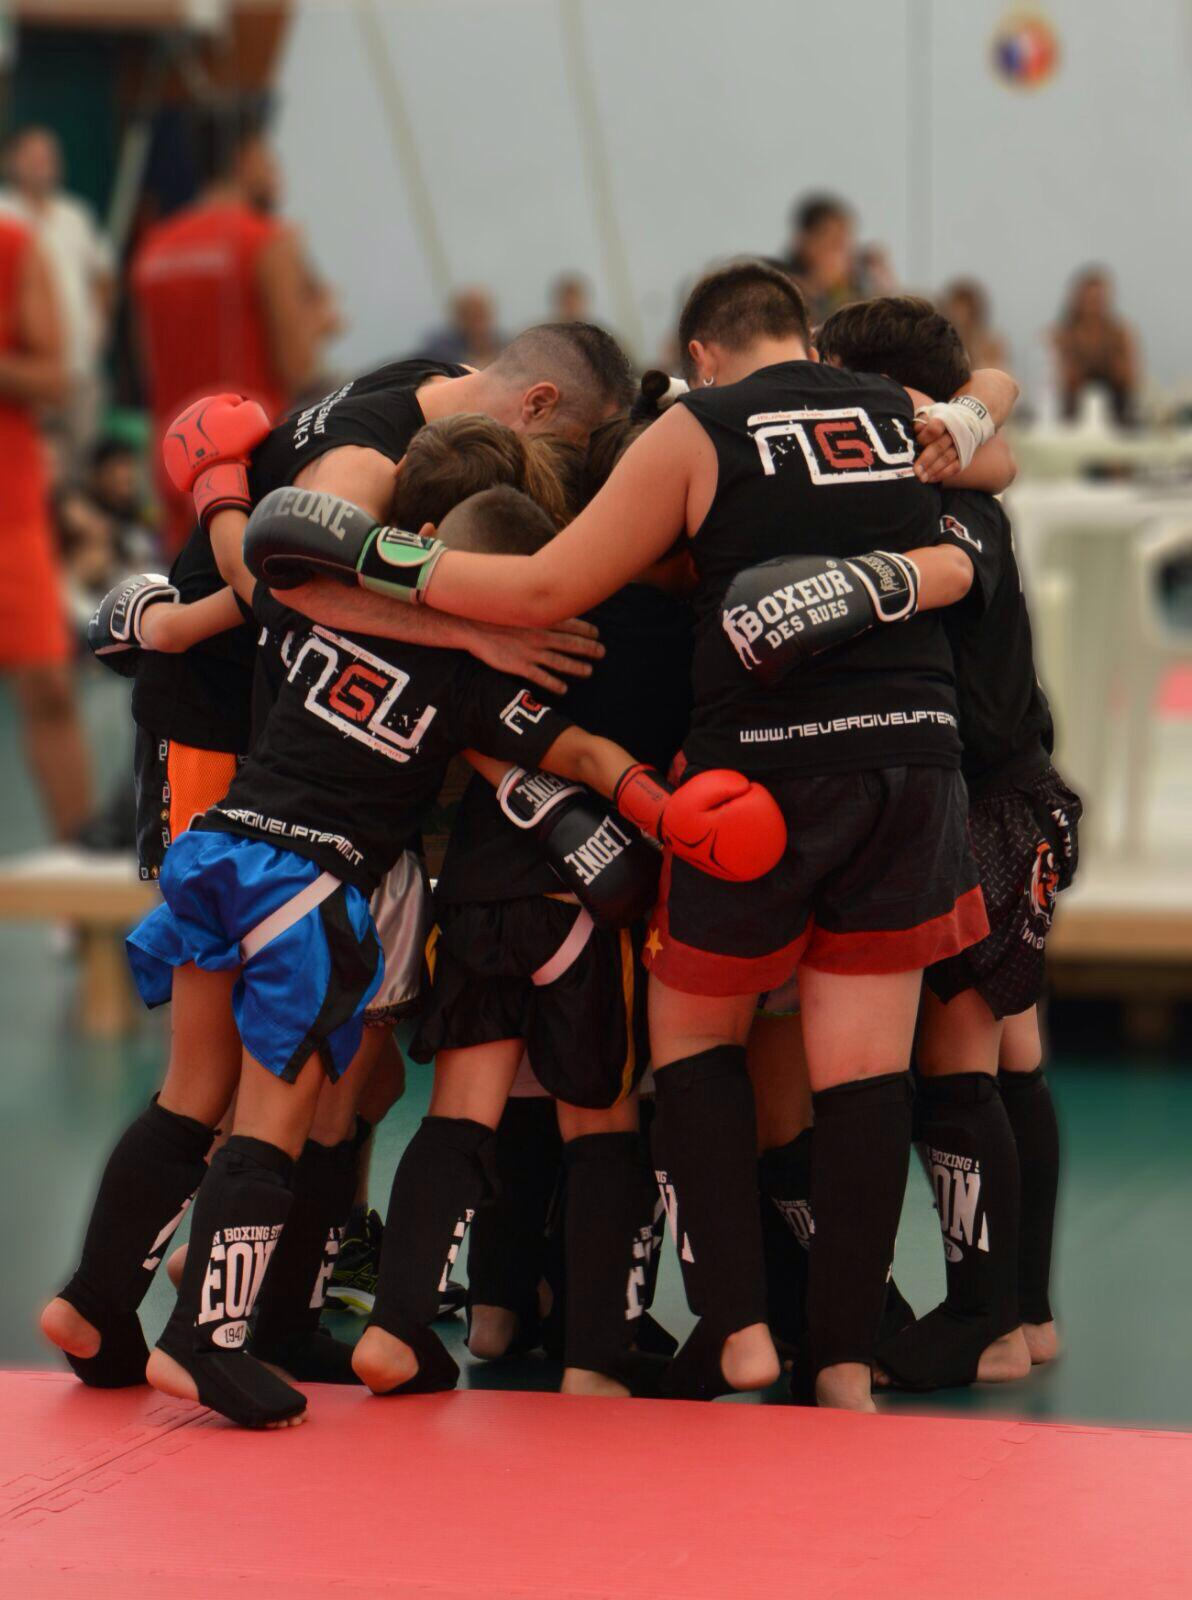 Foto Galleria SPORTMANIA 2019 - NEVER GIVE UP TEAM Fiumicino